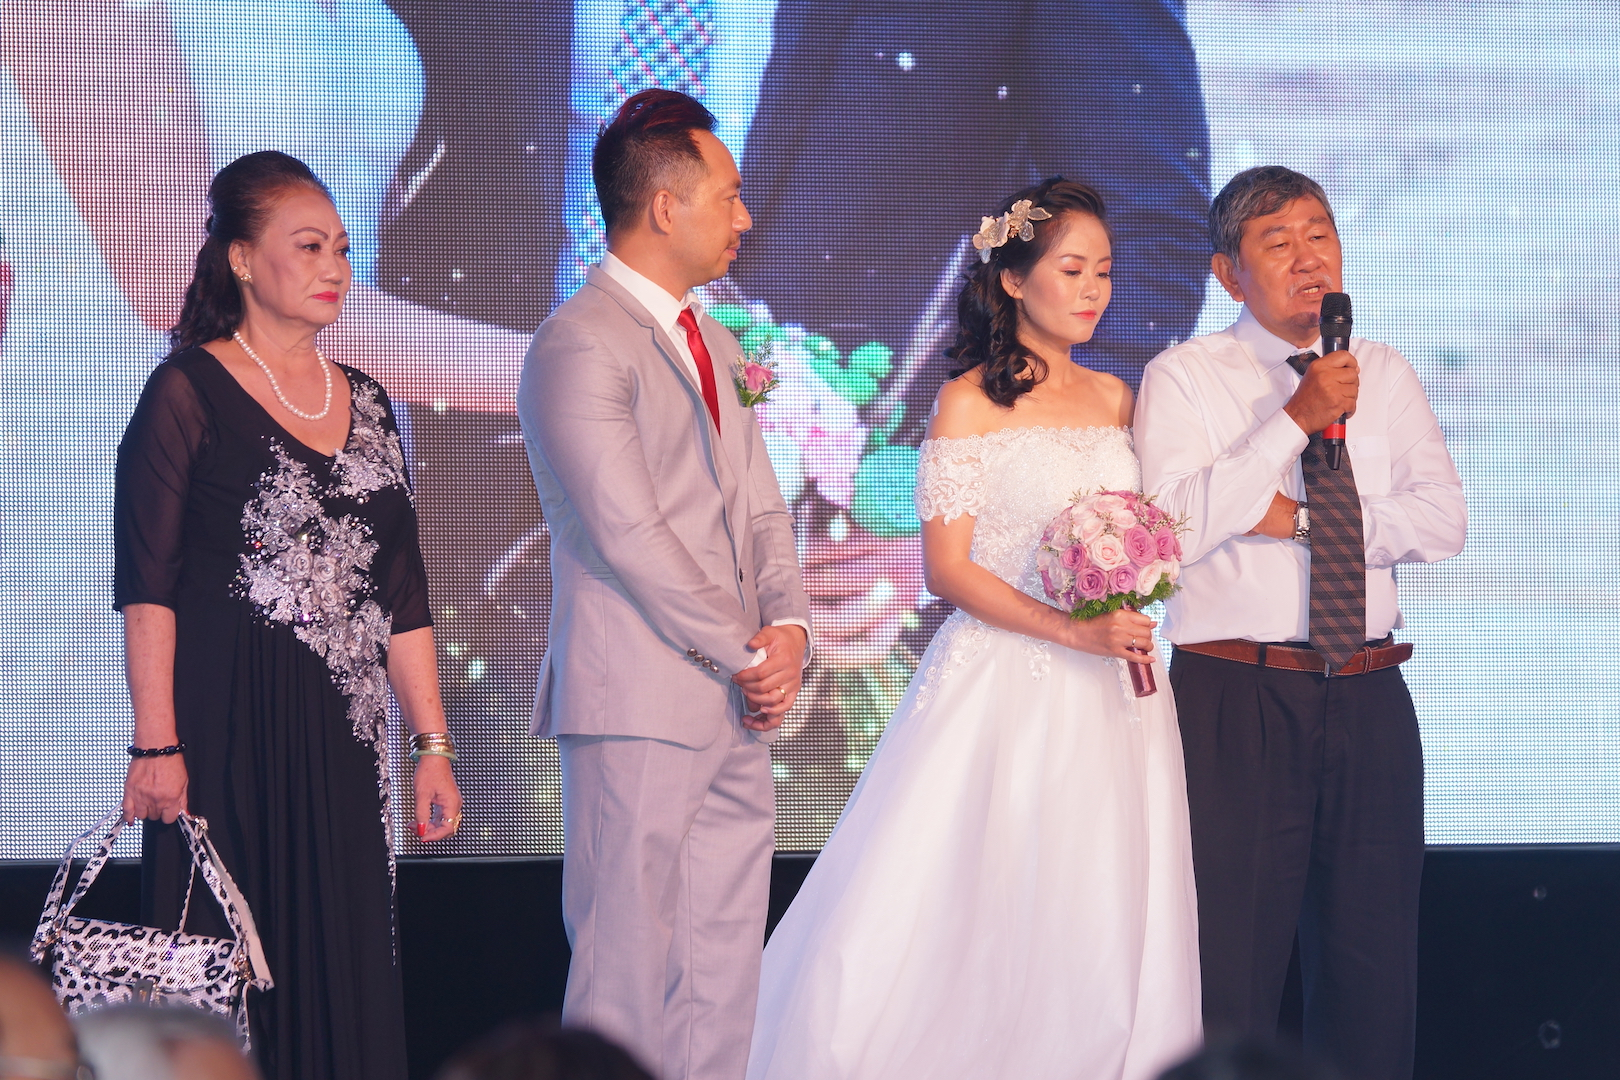 Wedding receptions in Hanoi 'more relaxed' than in Saigon